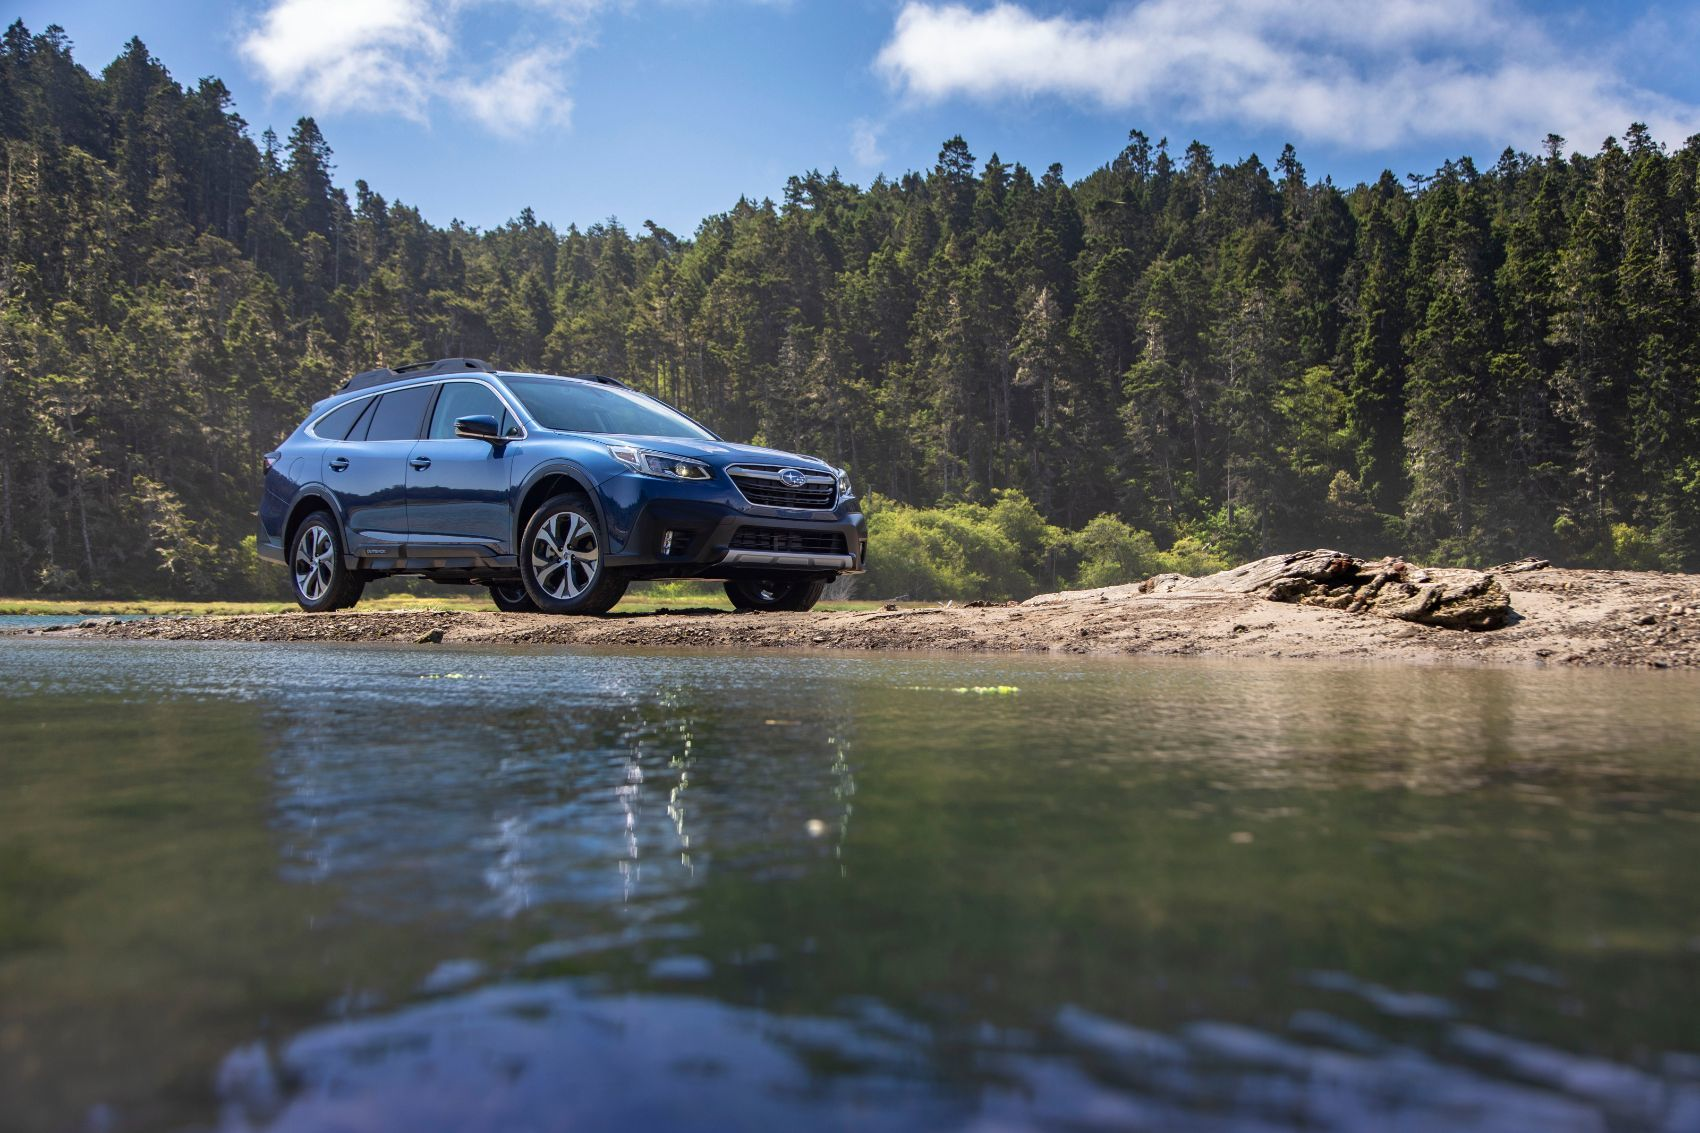 2021 Subaru Outback: Trim Levels, Available Features & Pricing Info